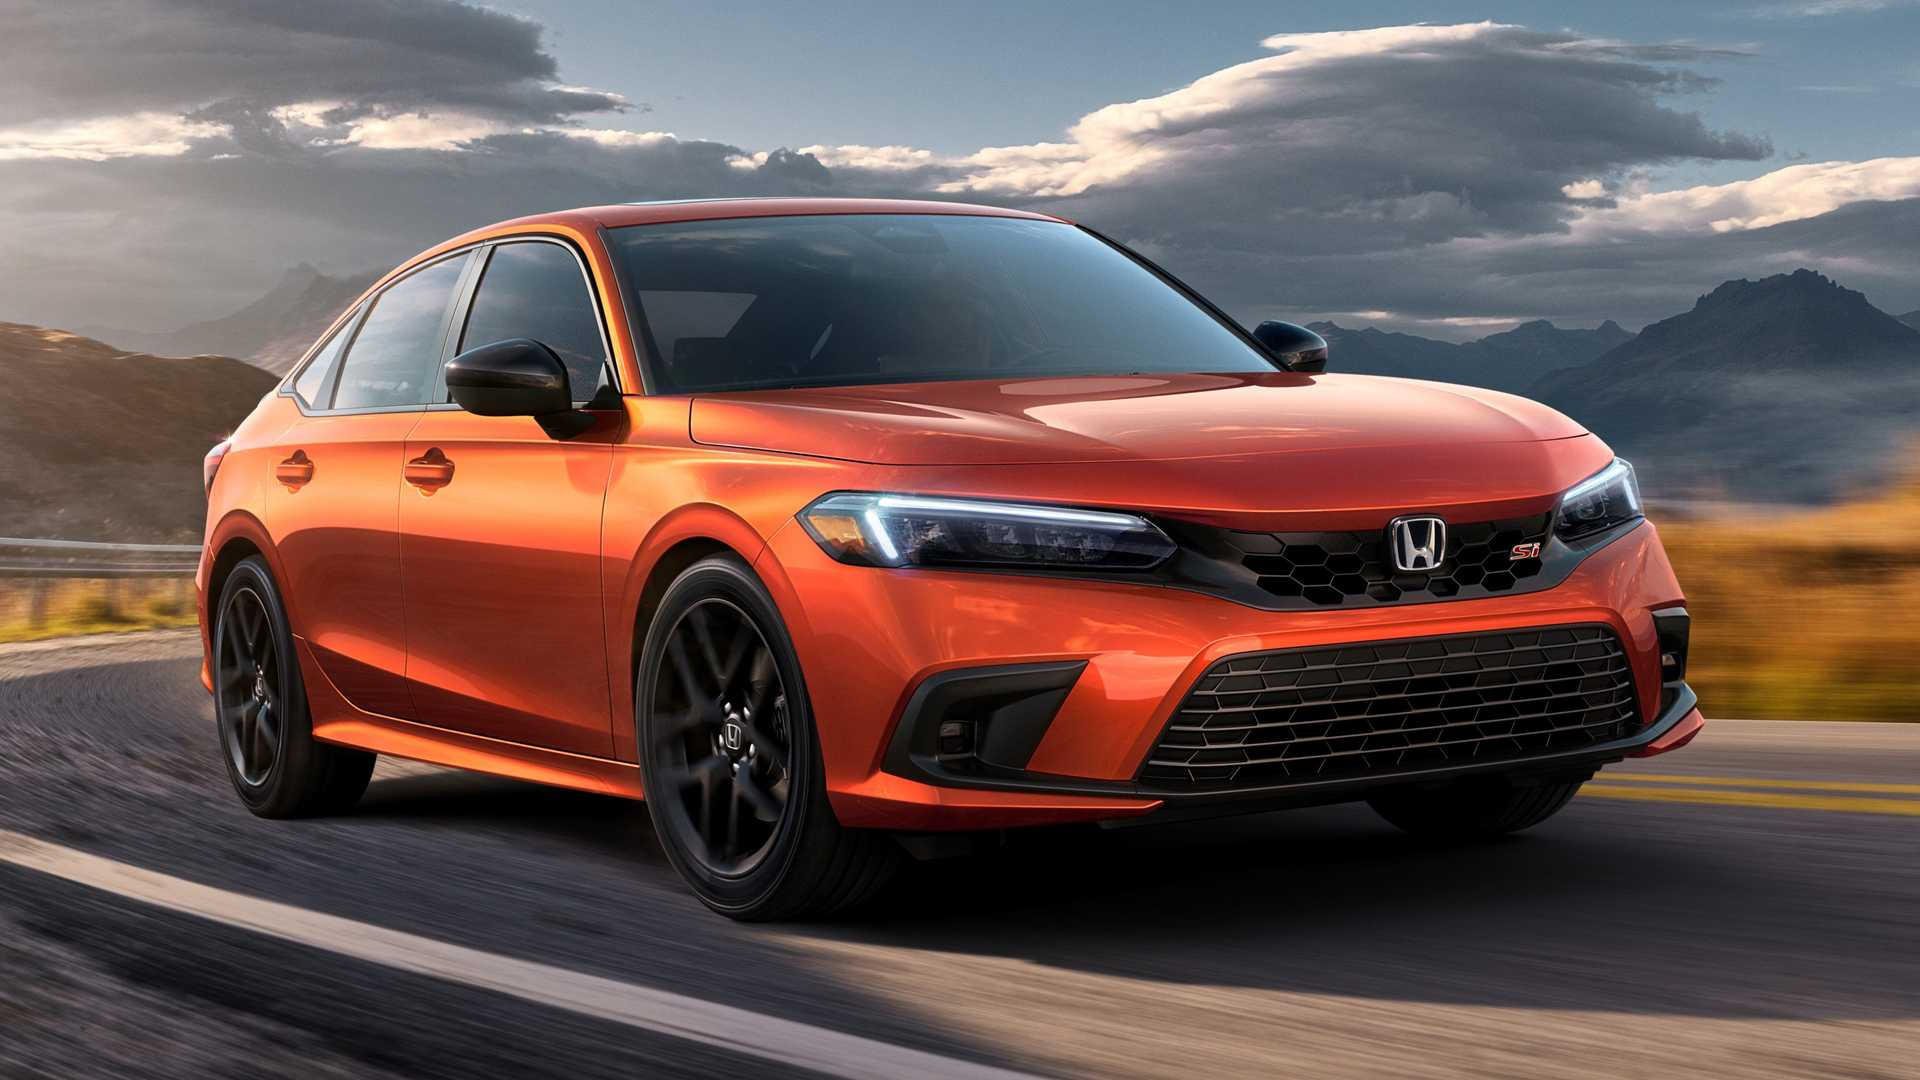 2022 Honda Civic Si Revealed: Less Power, But More Exciting To Drive